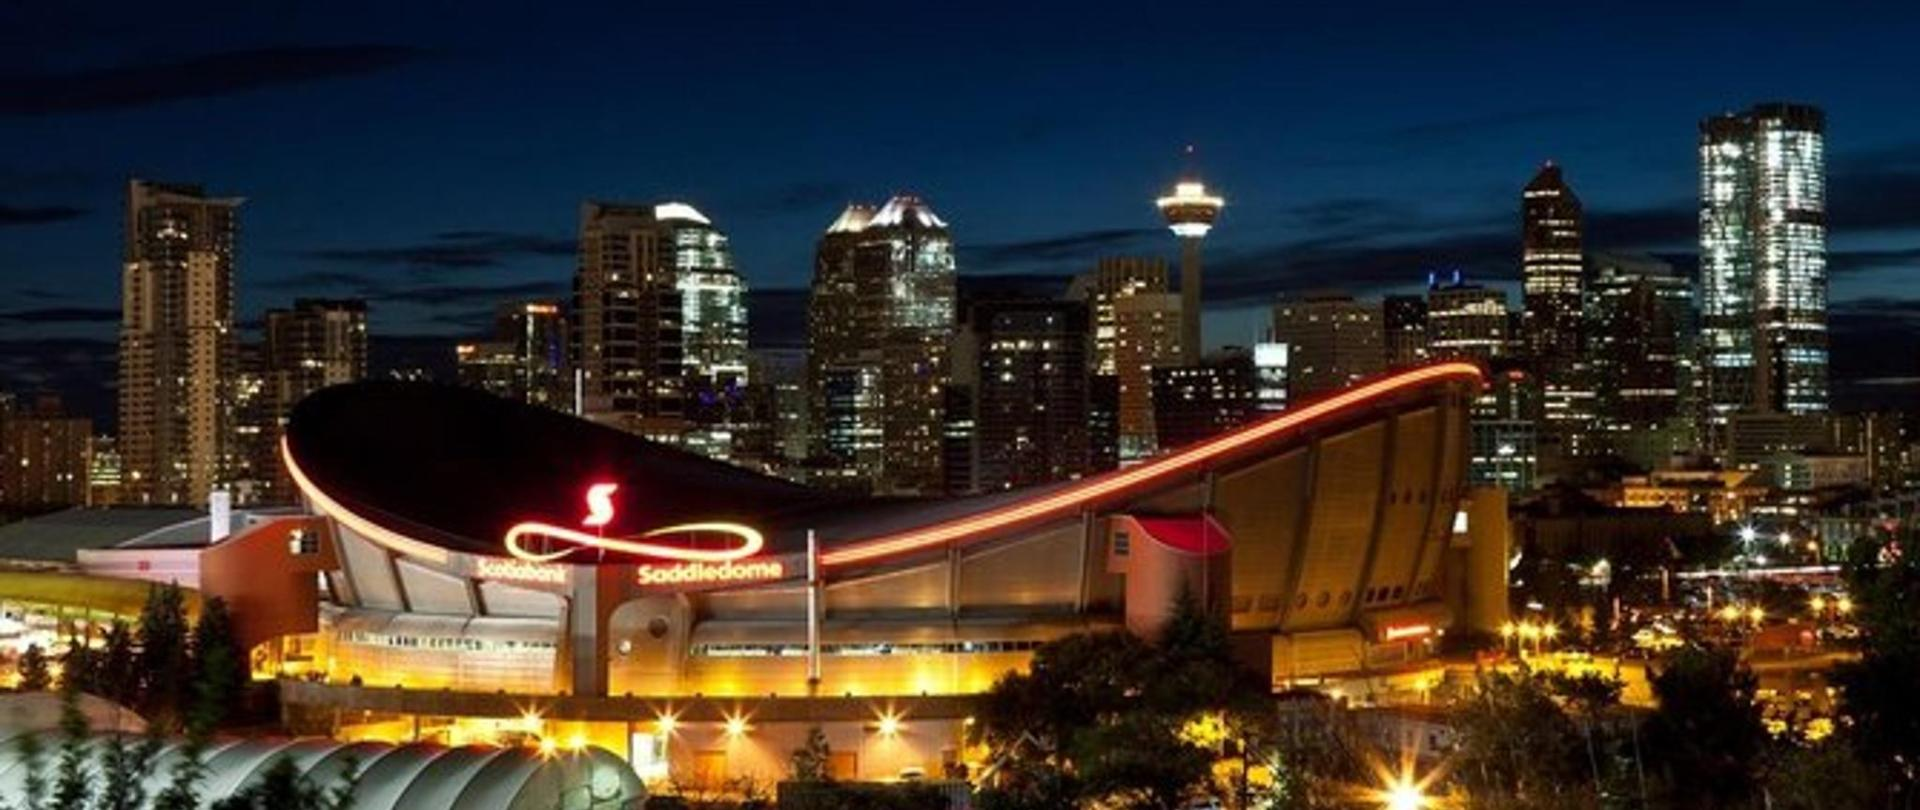 calgary_skyline_night2_1.jpg.670x379_132_246_5836.jpg